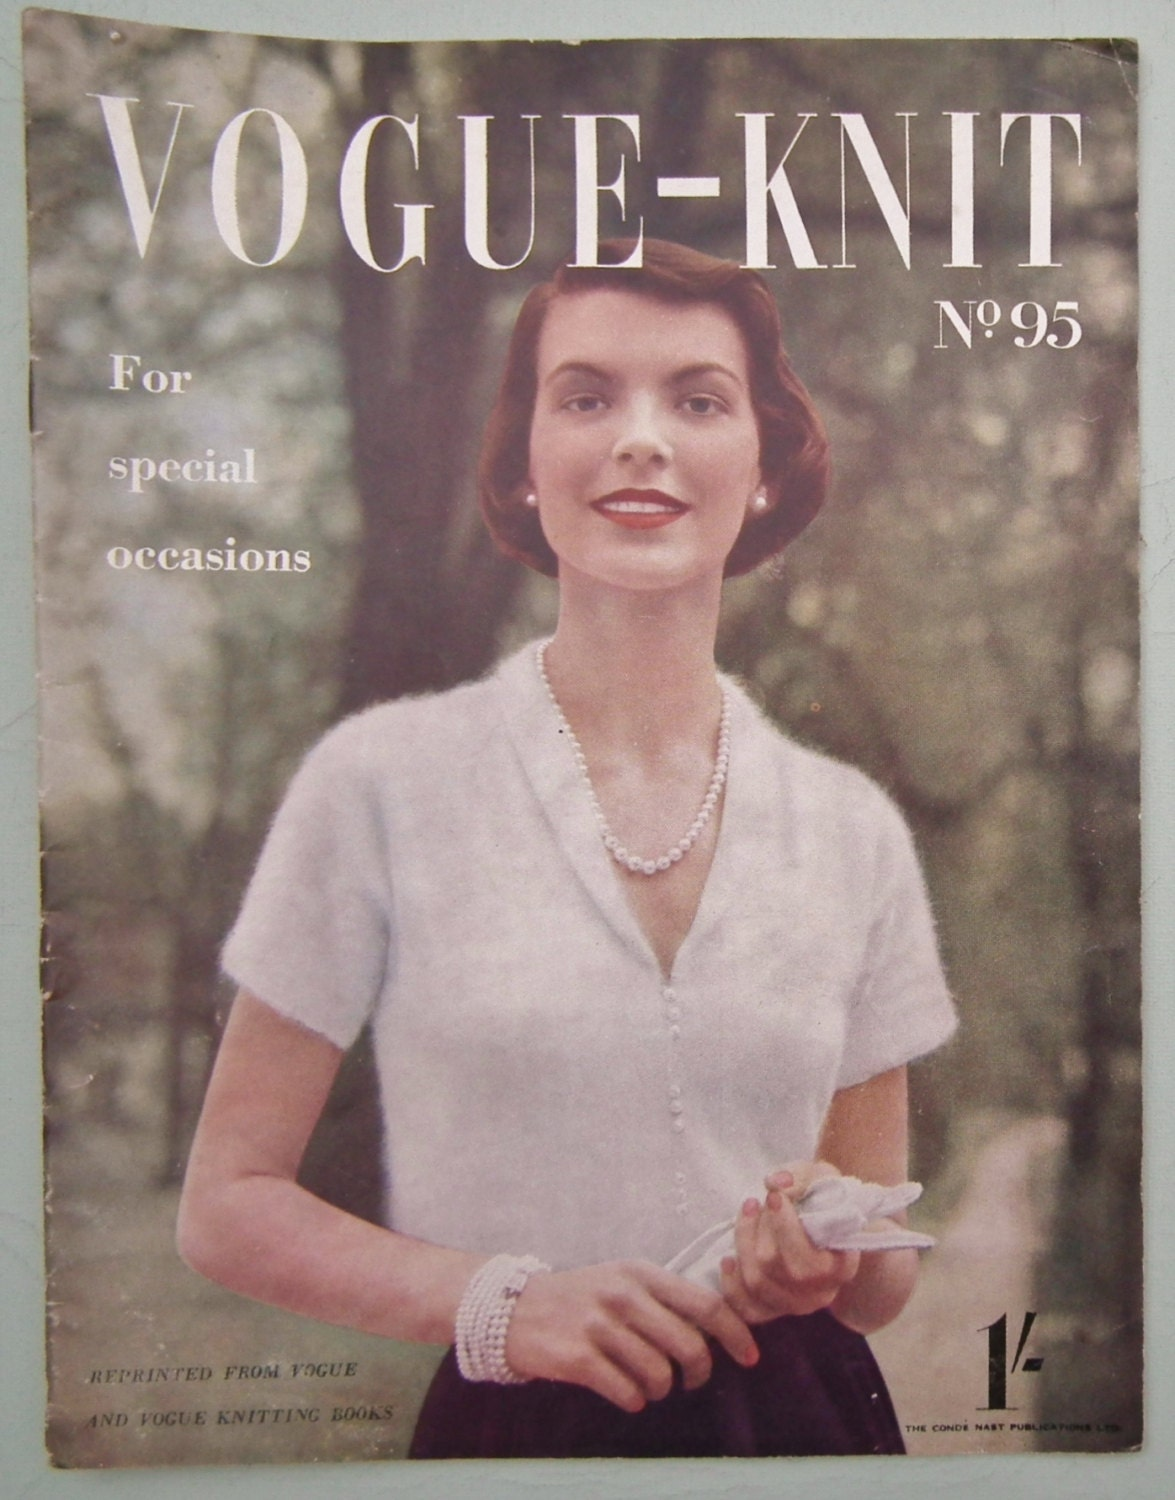 Vintage 1940s Vogue Knitting Patterns Book Vogue-Knit No. 95